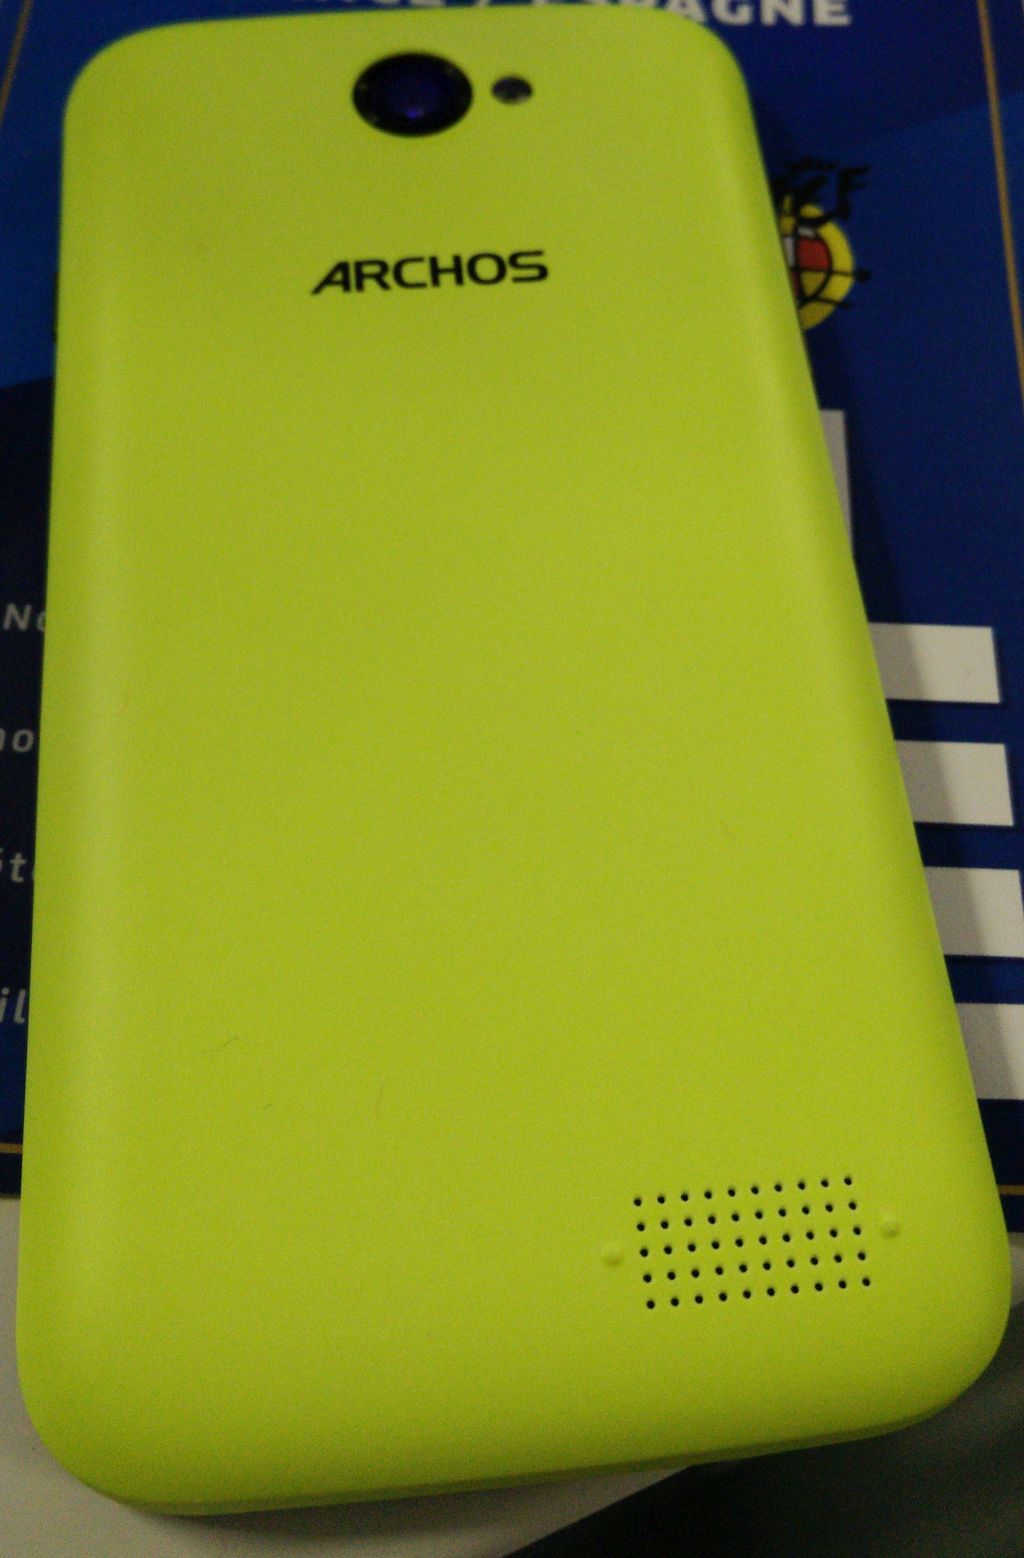 ARCHOS_40_Cesium_backcover_yellow_IMG_20140904_195911_nowrmk.jpg